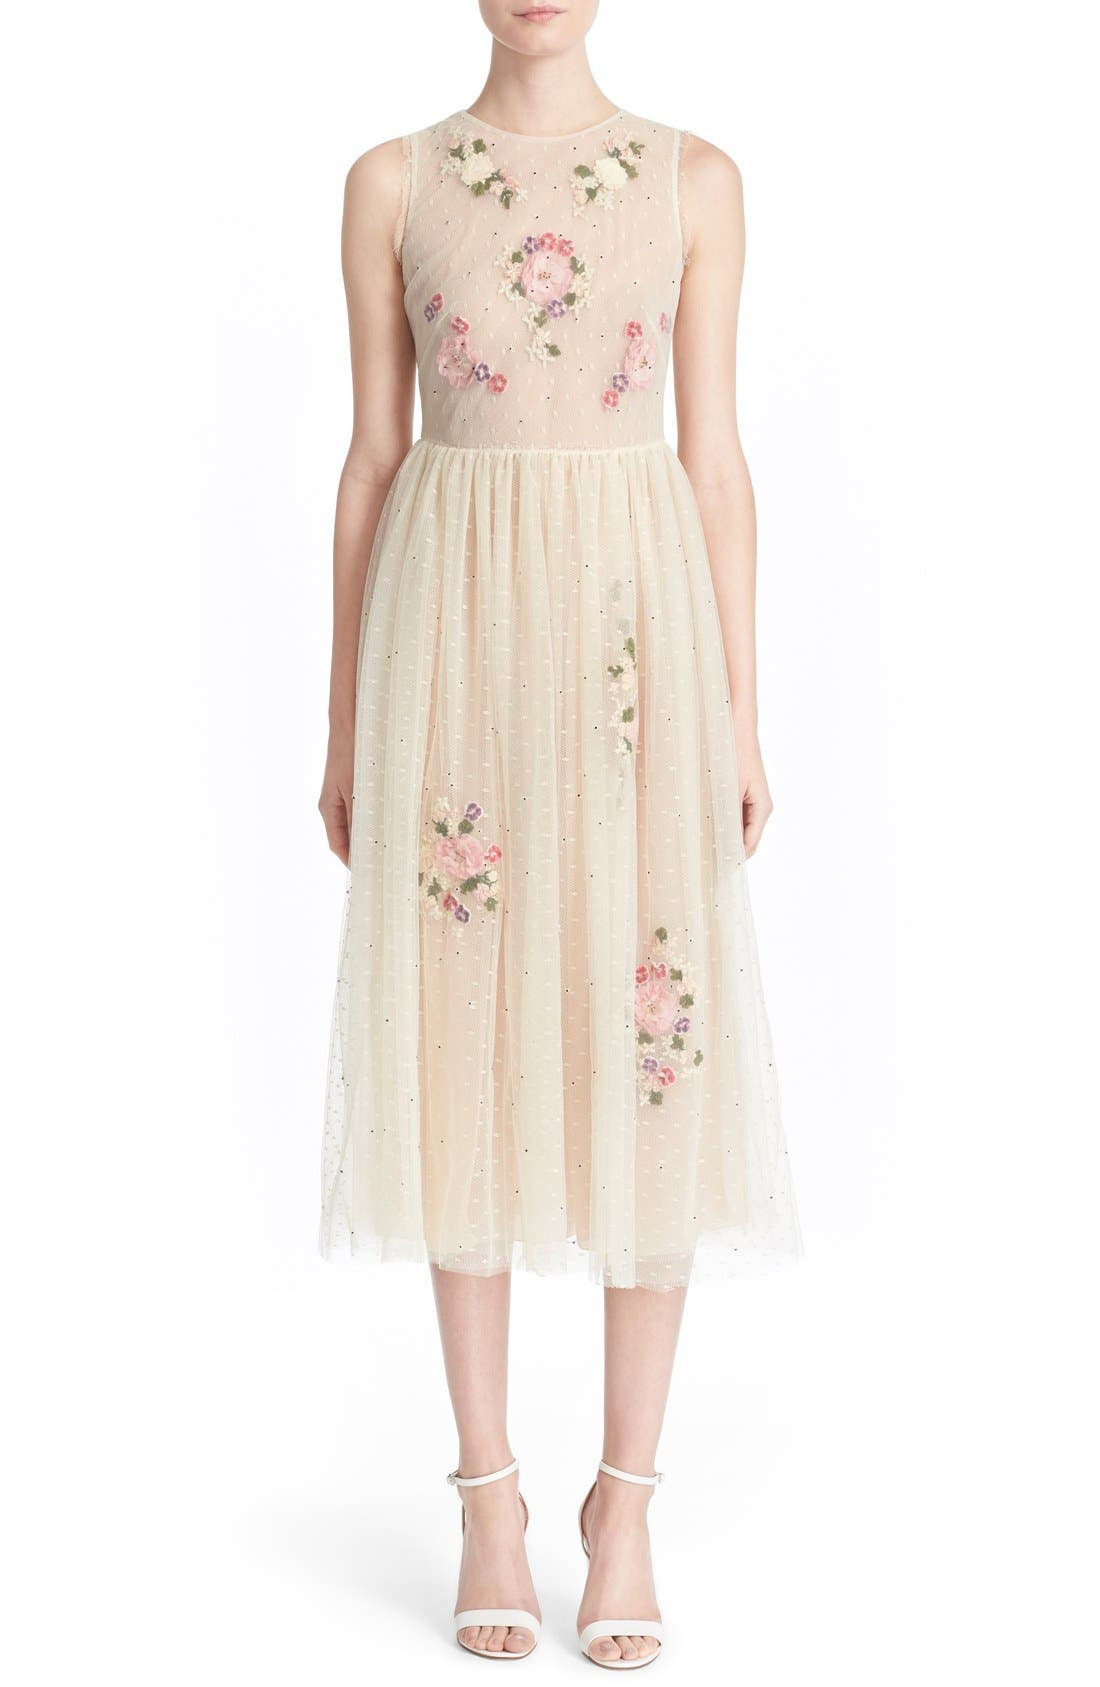 Main Image - RED Valentino Floral Appliqué Sleeveless Dress